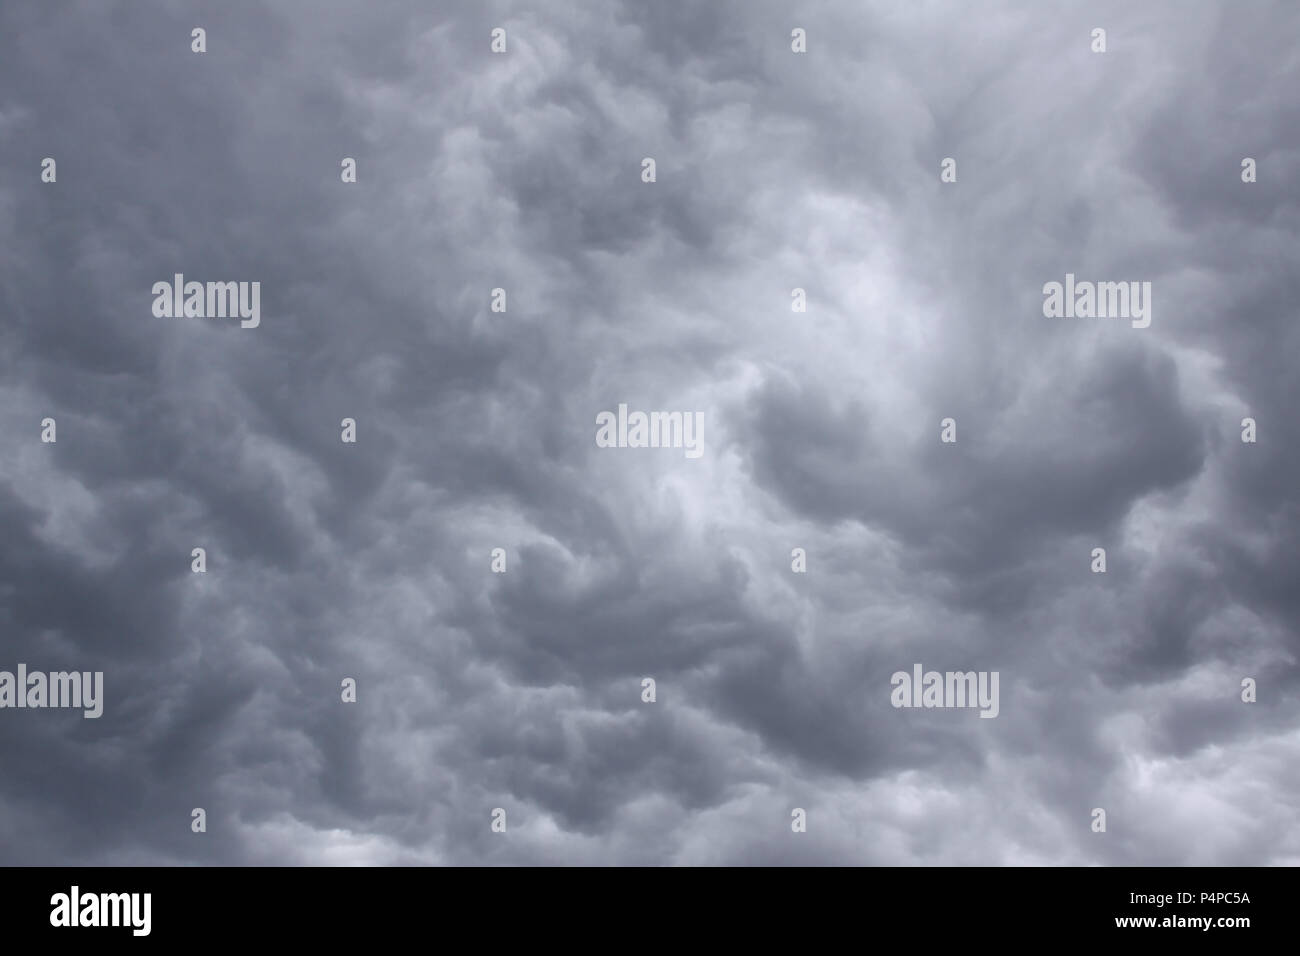 Sky with thunderclouds – rain clouds - Stock Image